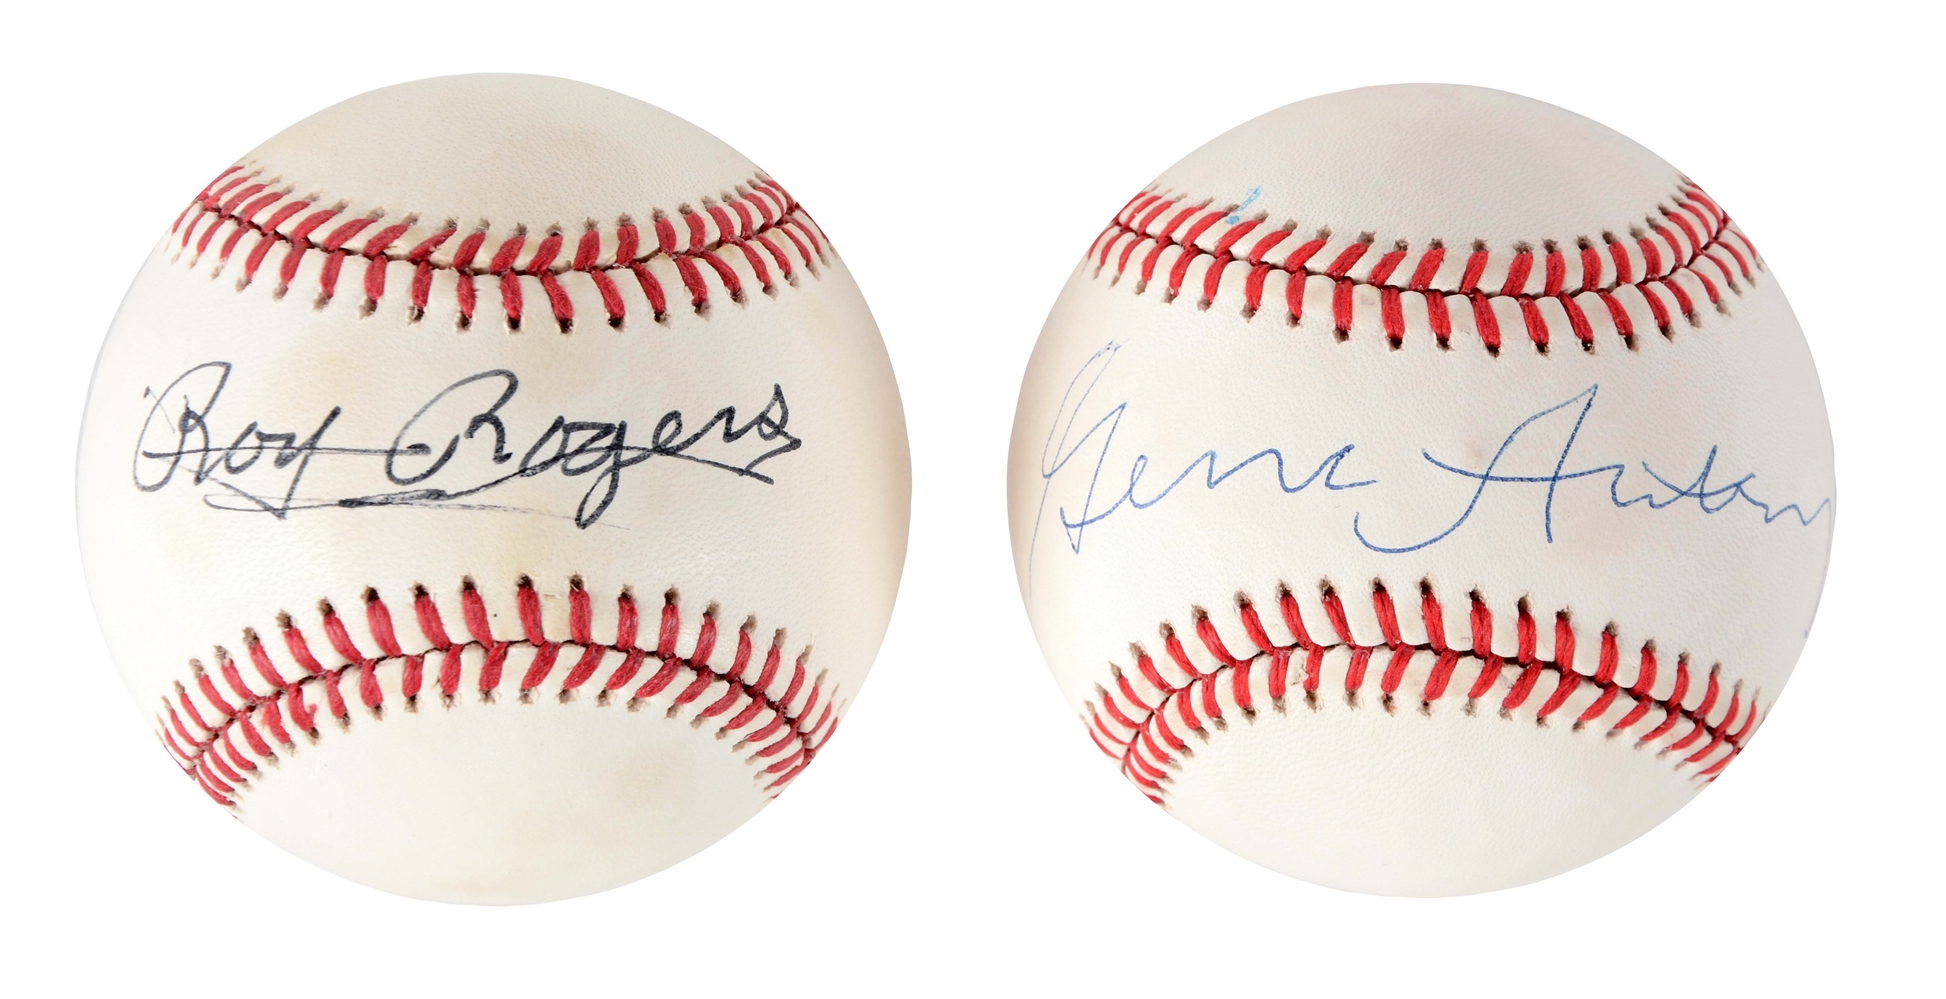 Lot of 2: Gene Autry & Roy Rogers Signed Baseballs.